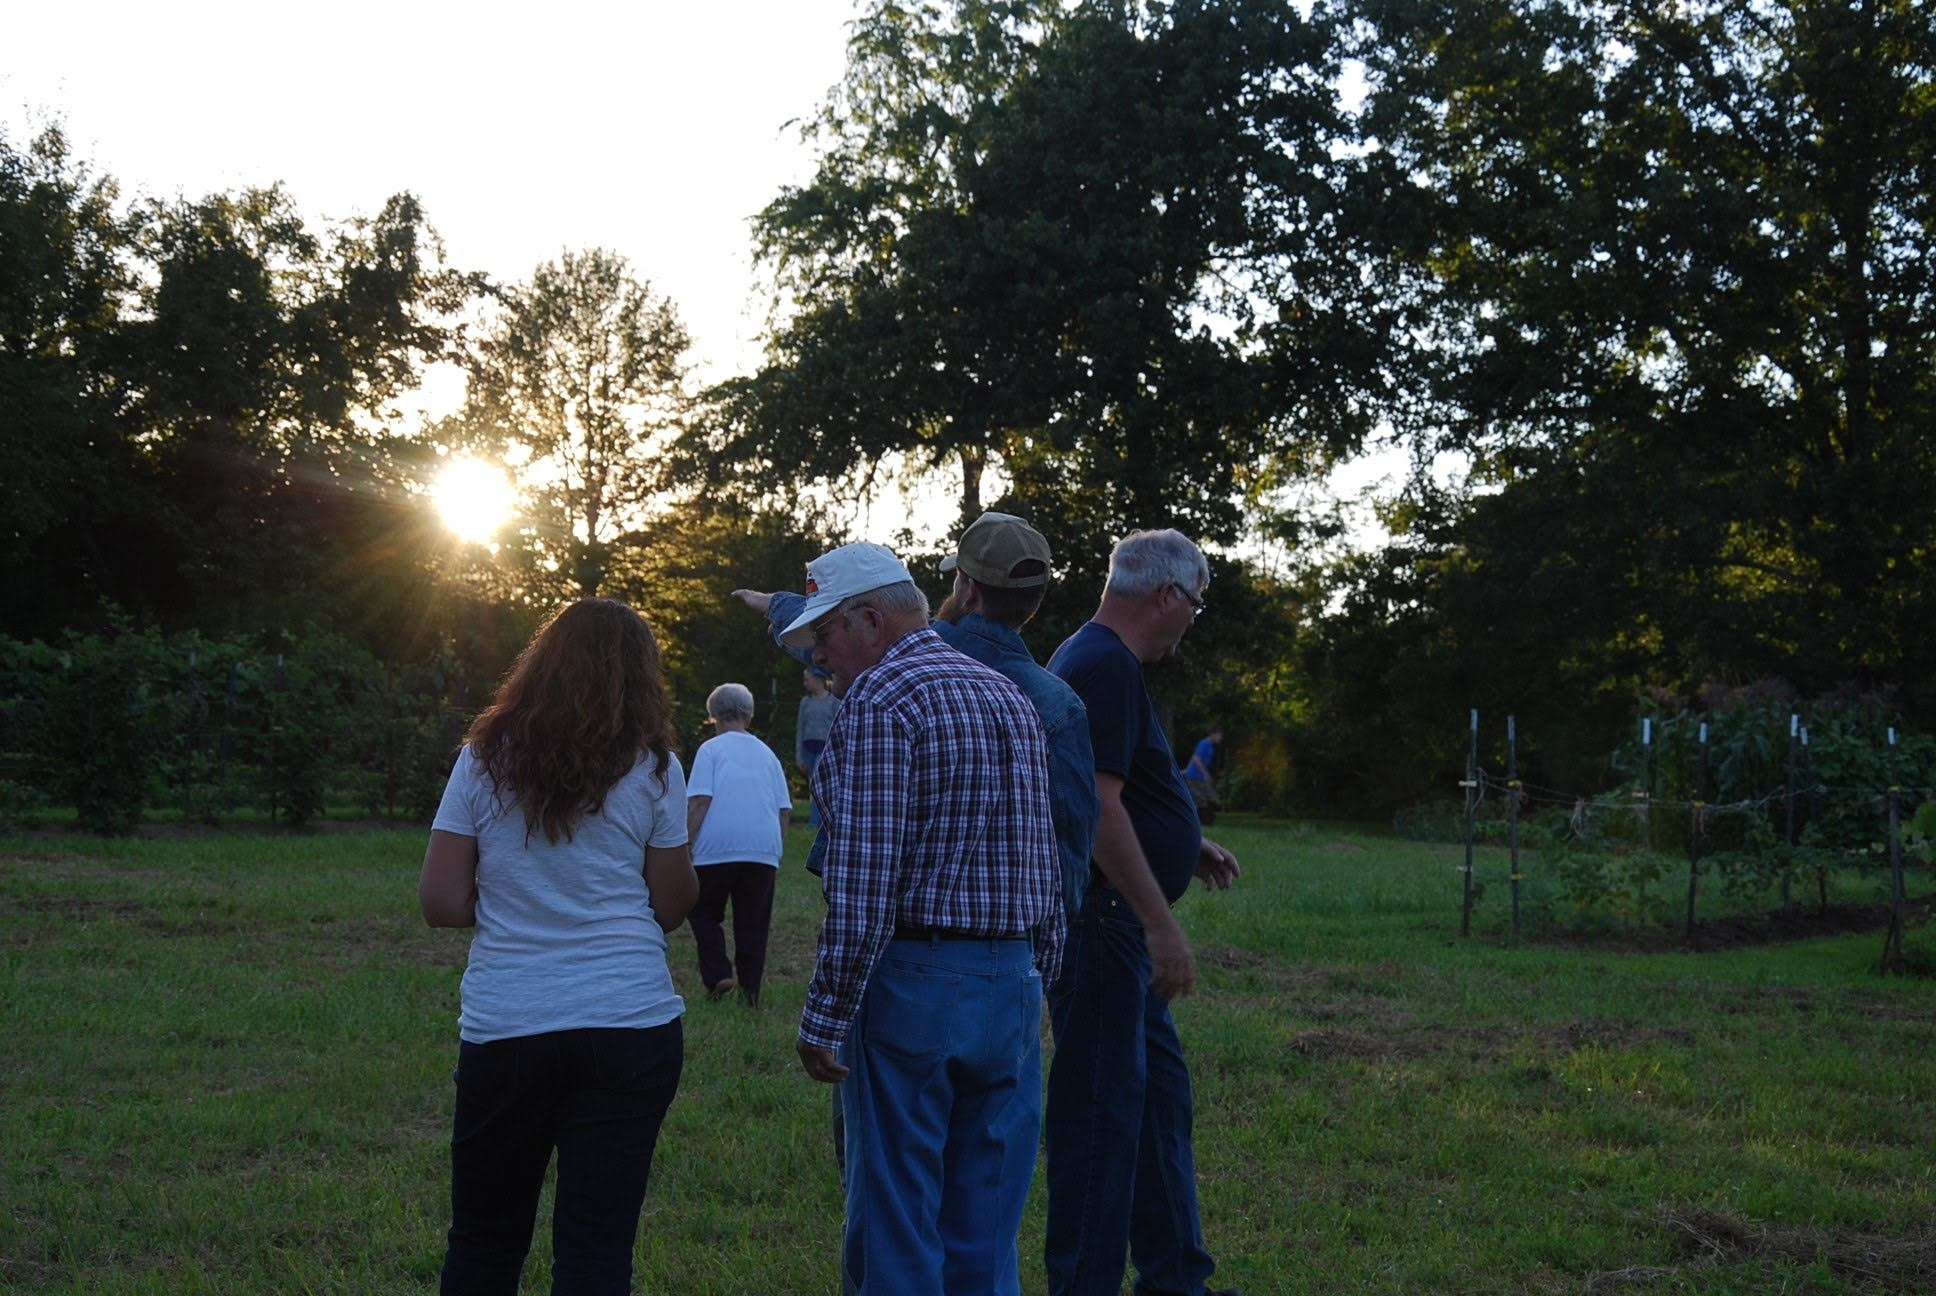 Grandpa Joe (white hat) faced his sunset in July 2019. Here, he's pictured on his land in Crossville, Tennessee.